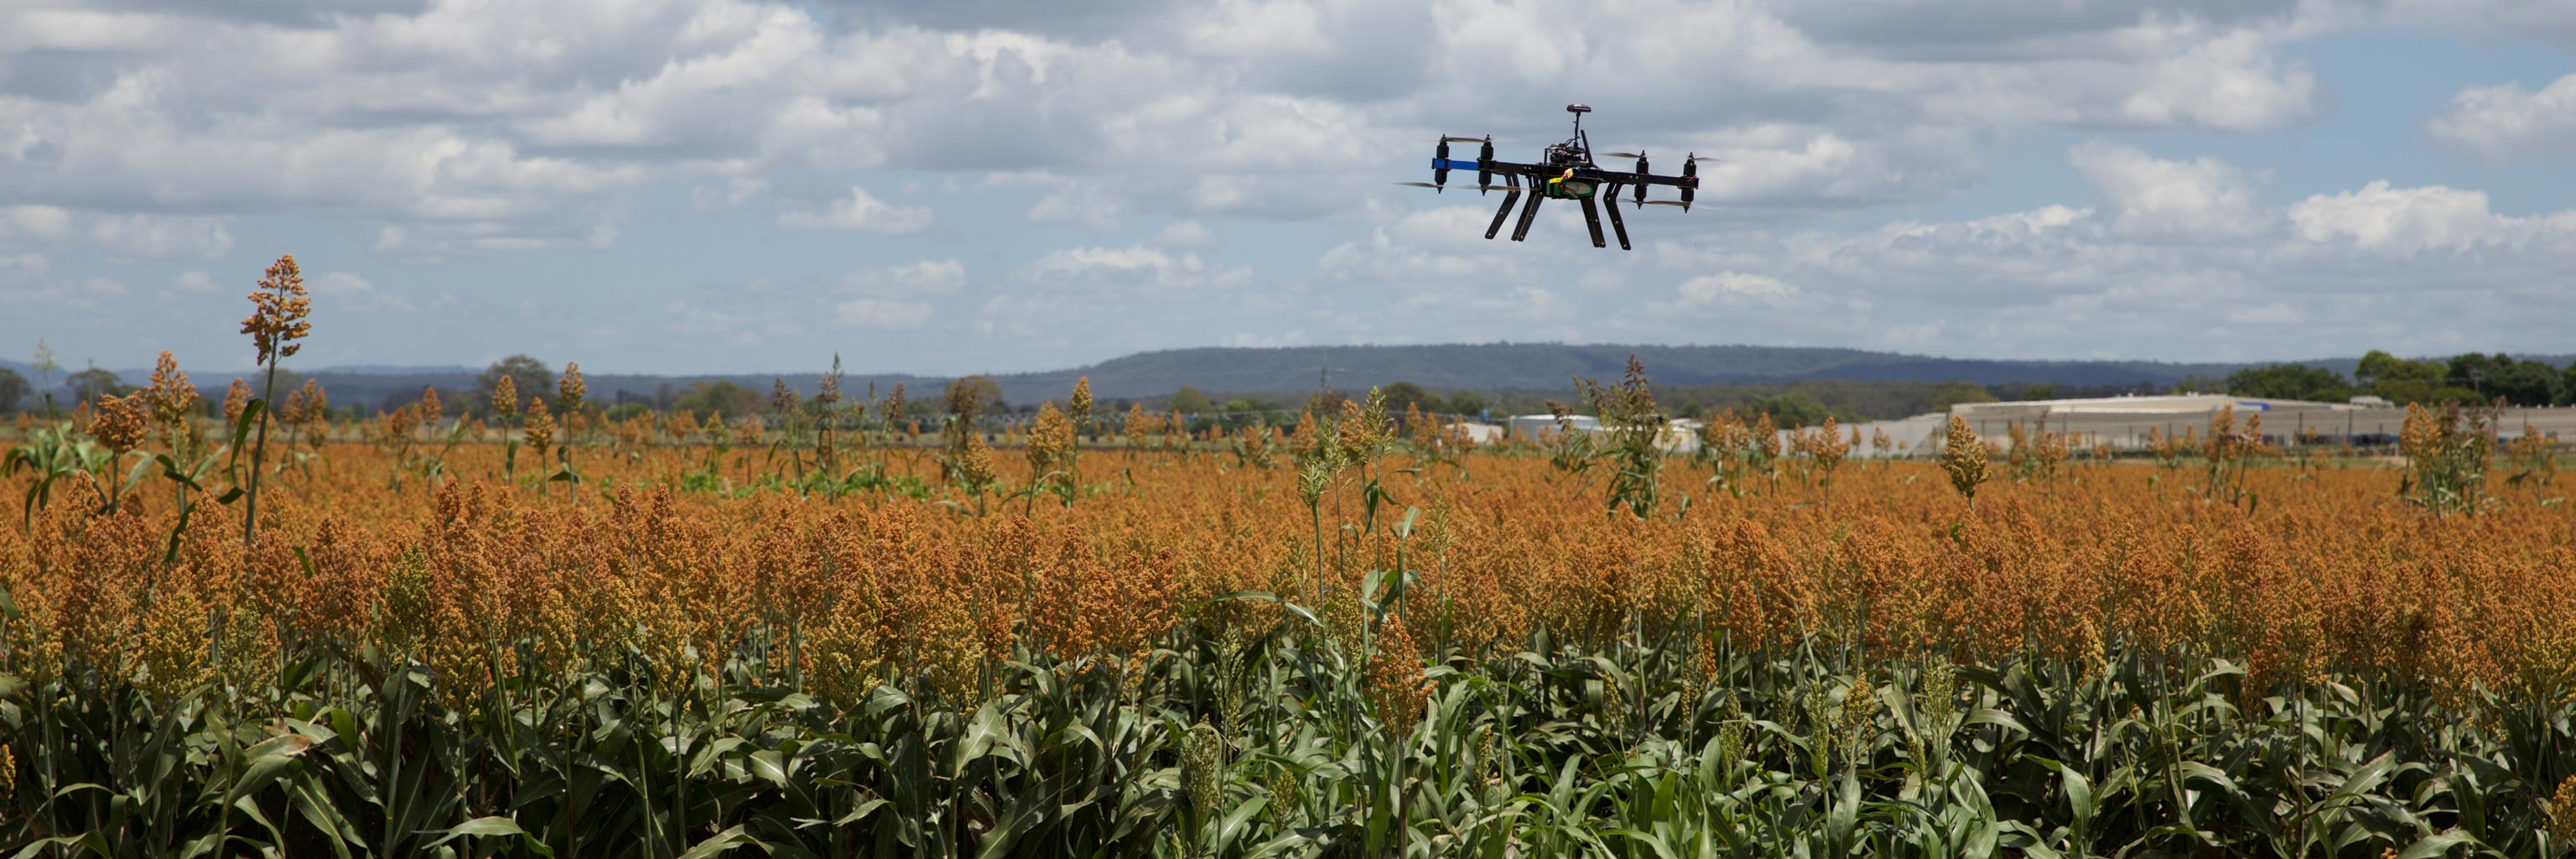 Drone flies over a field of crops